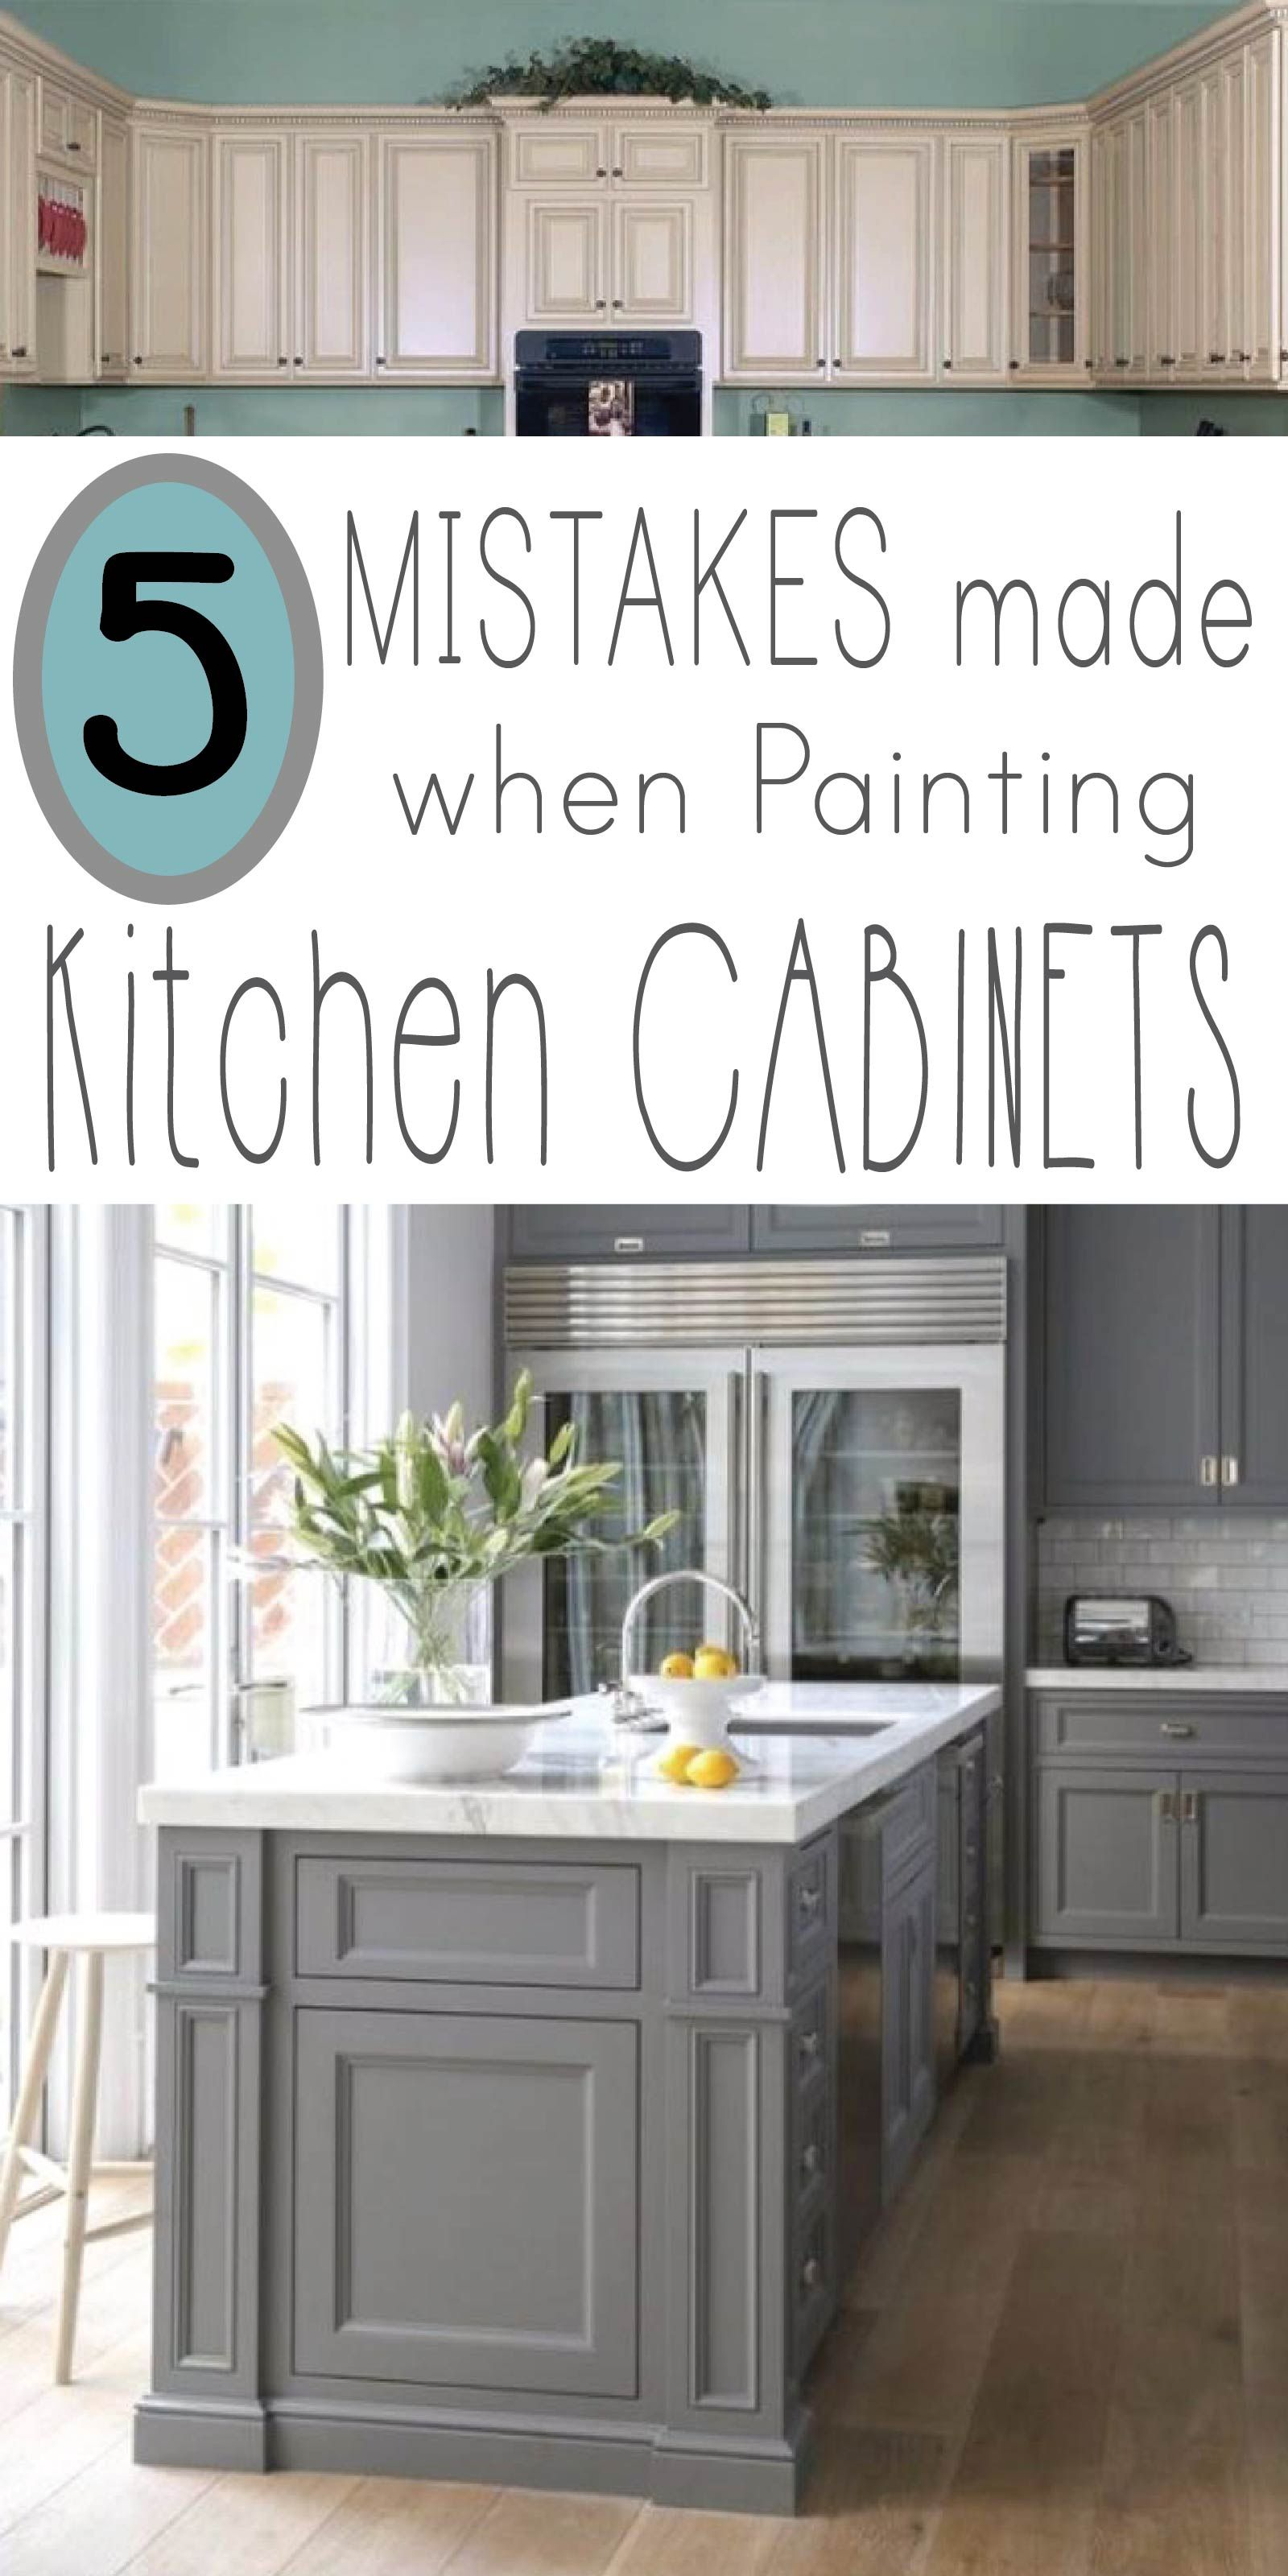 Best Kitchen Gallery: Mistakes People Make When Painting Kitchen Cabi S Painting of Painting Kitchen Cabinets on rachelxblog.com